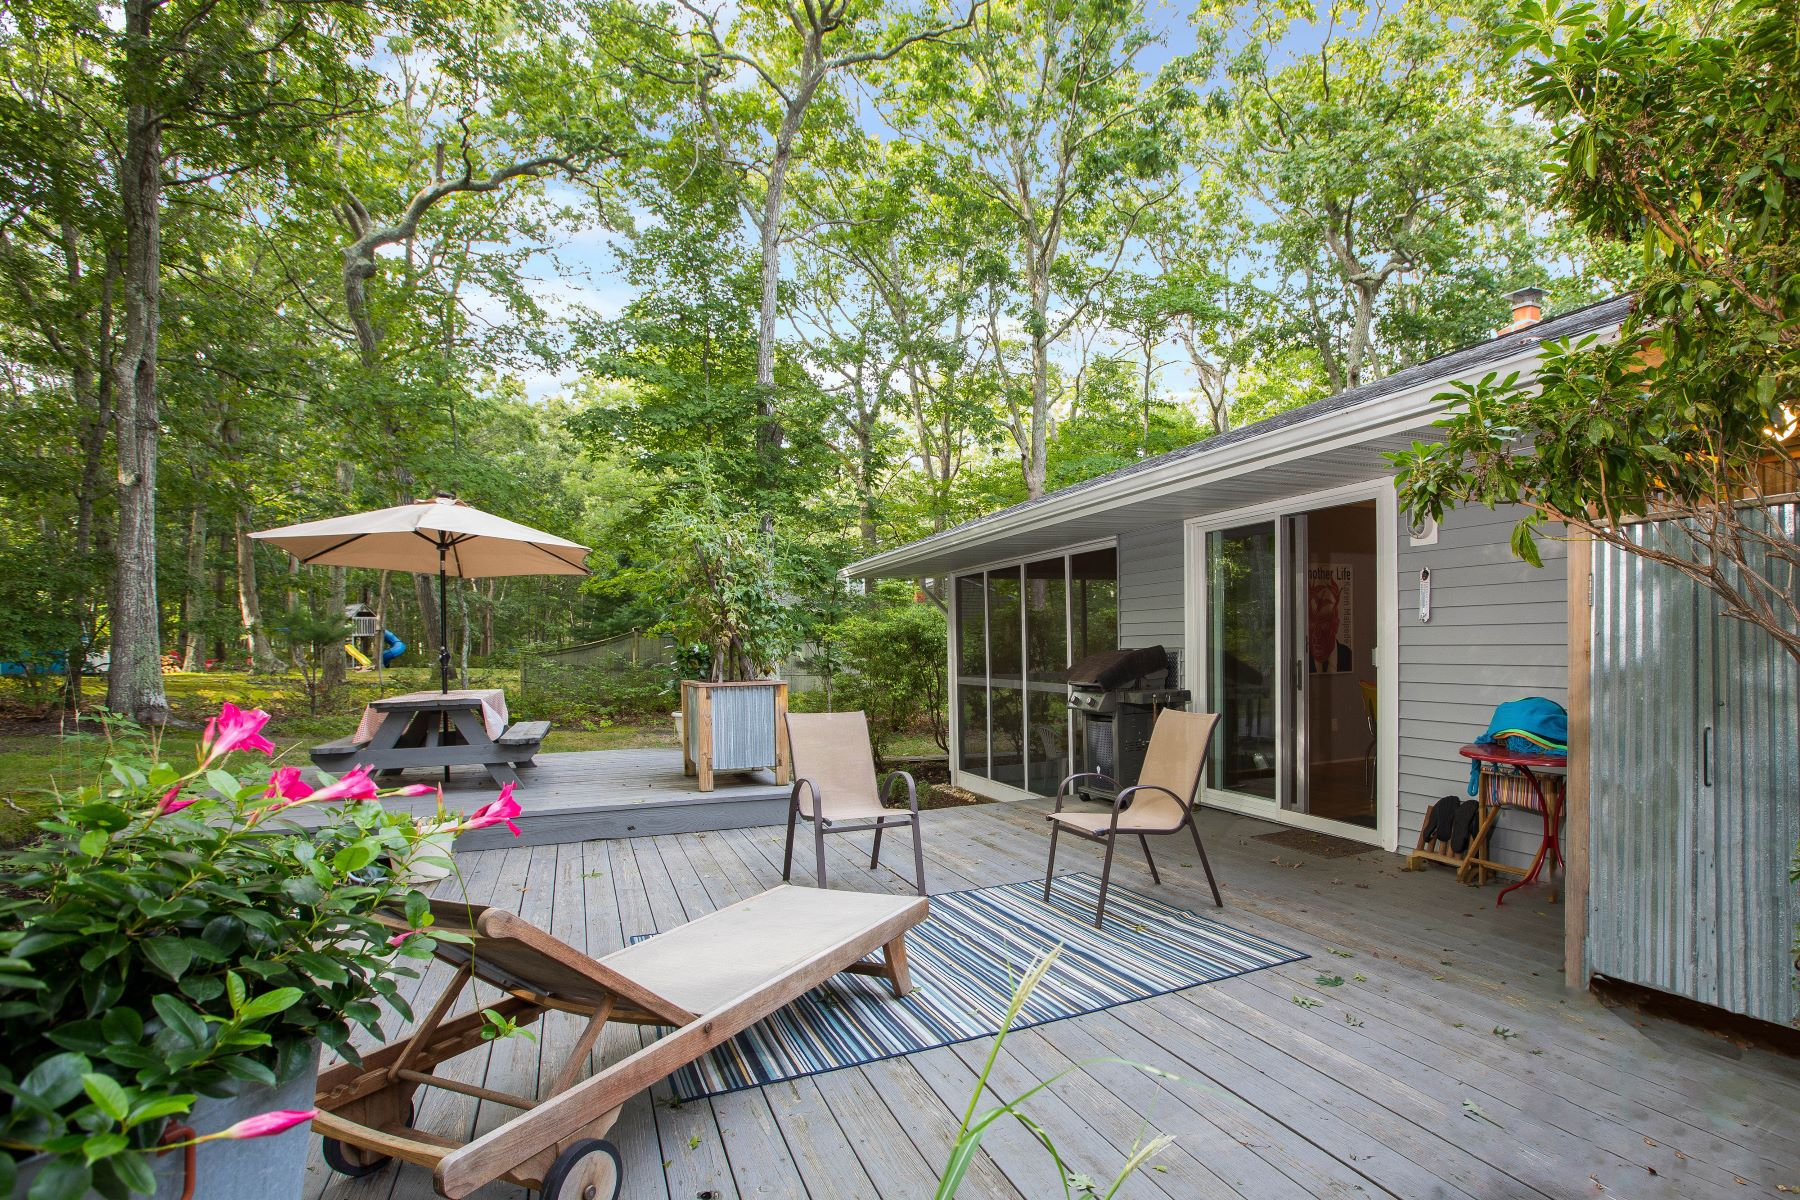 Single Family Homes for Sale at Shelter Island 40 Brander Parkway Shelter Island, New York 11964 United States